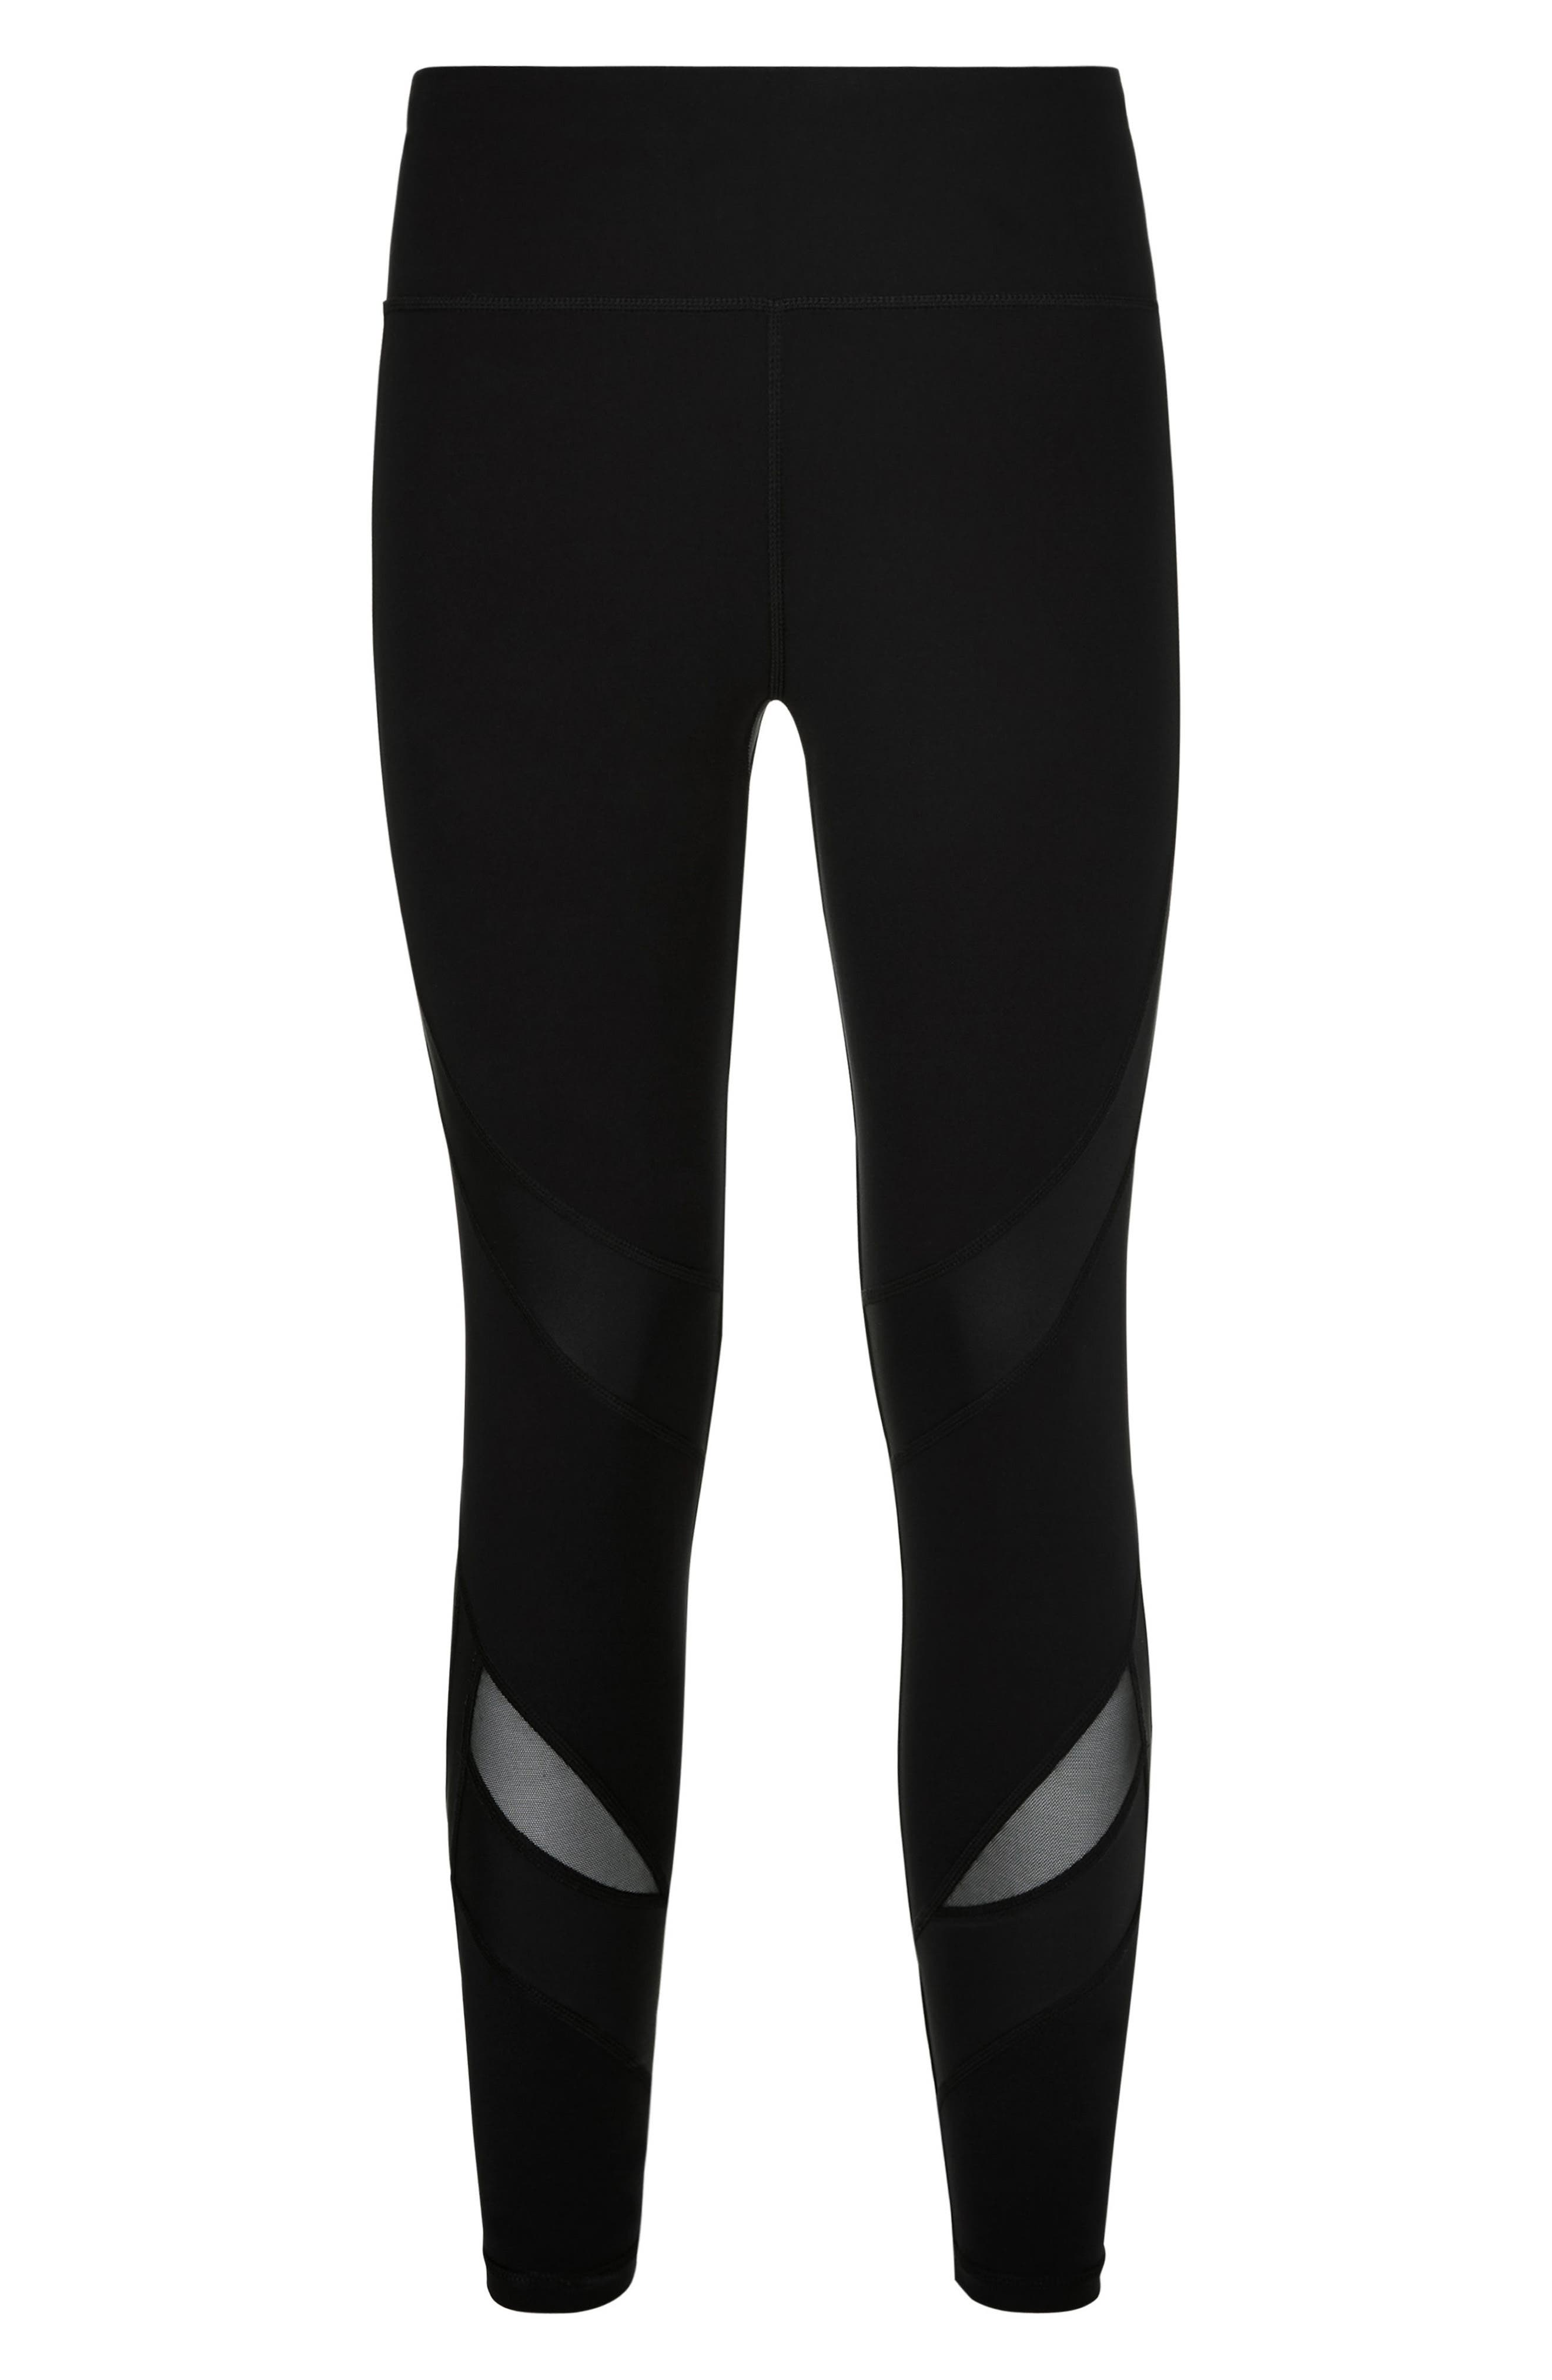 Wetlook Run Leggings,                             Alternate thumbnail 6, color,                             BLACK